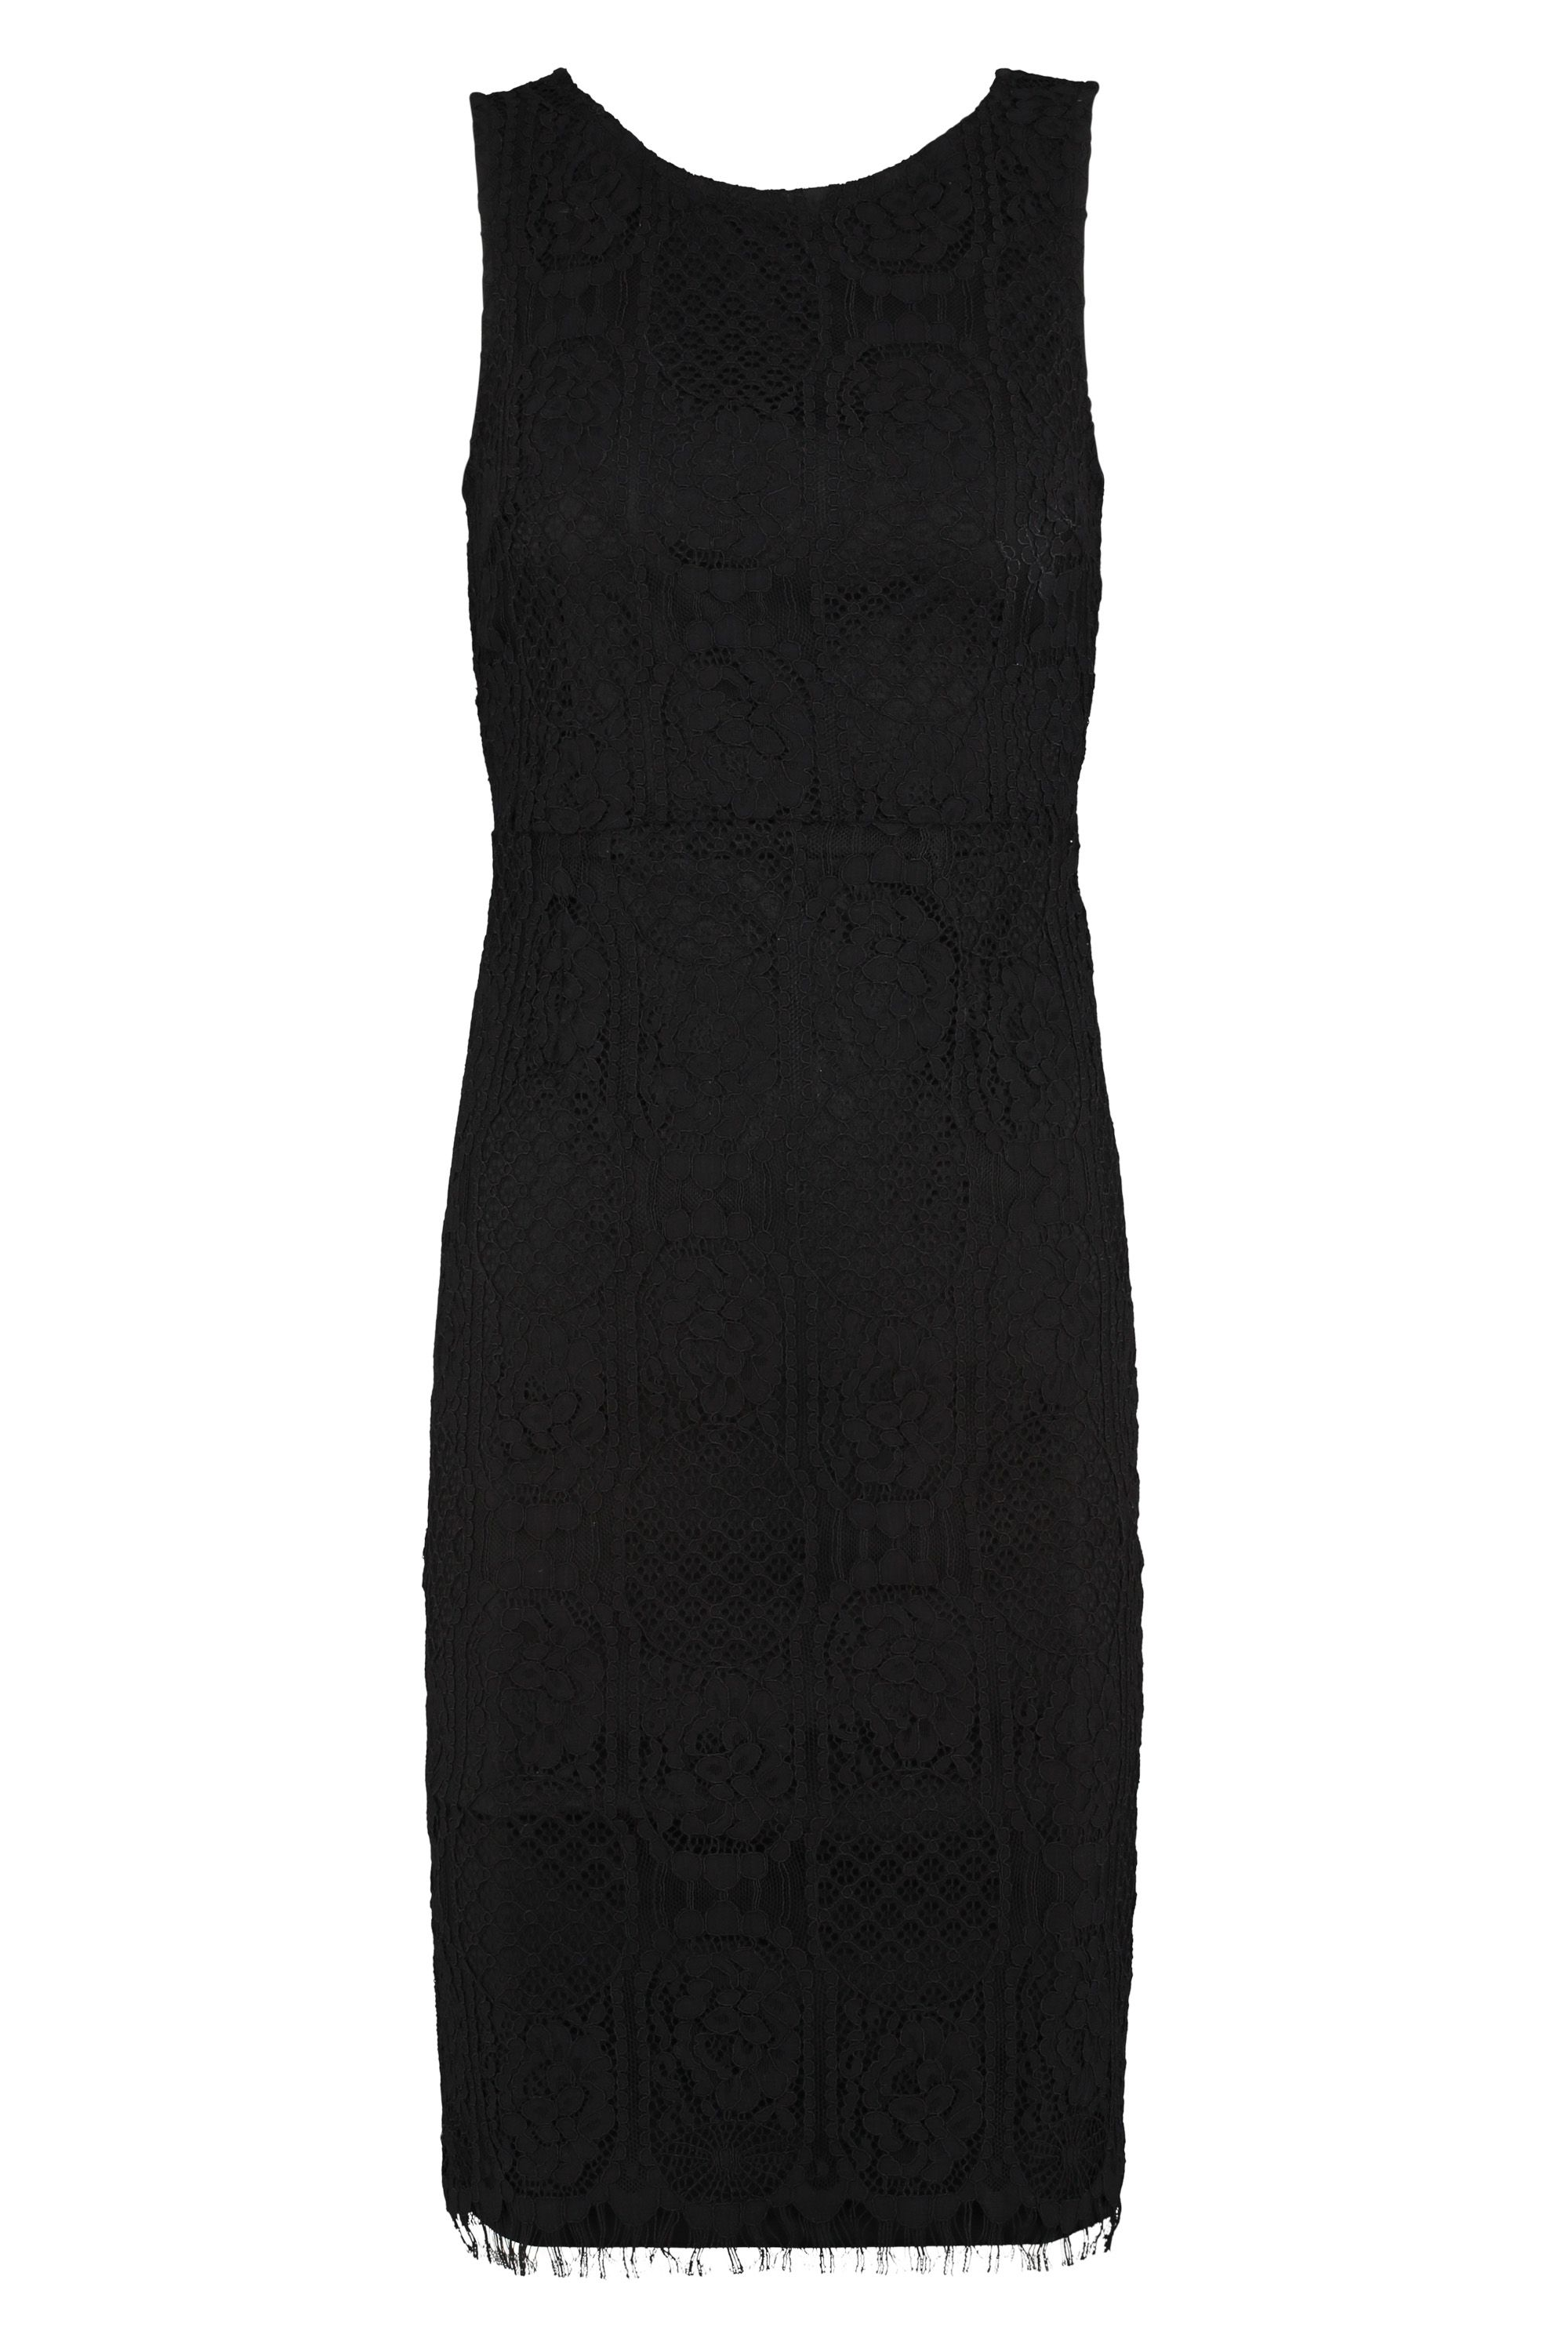 Sugarhill Boutique Lucia Lace Dress, Black